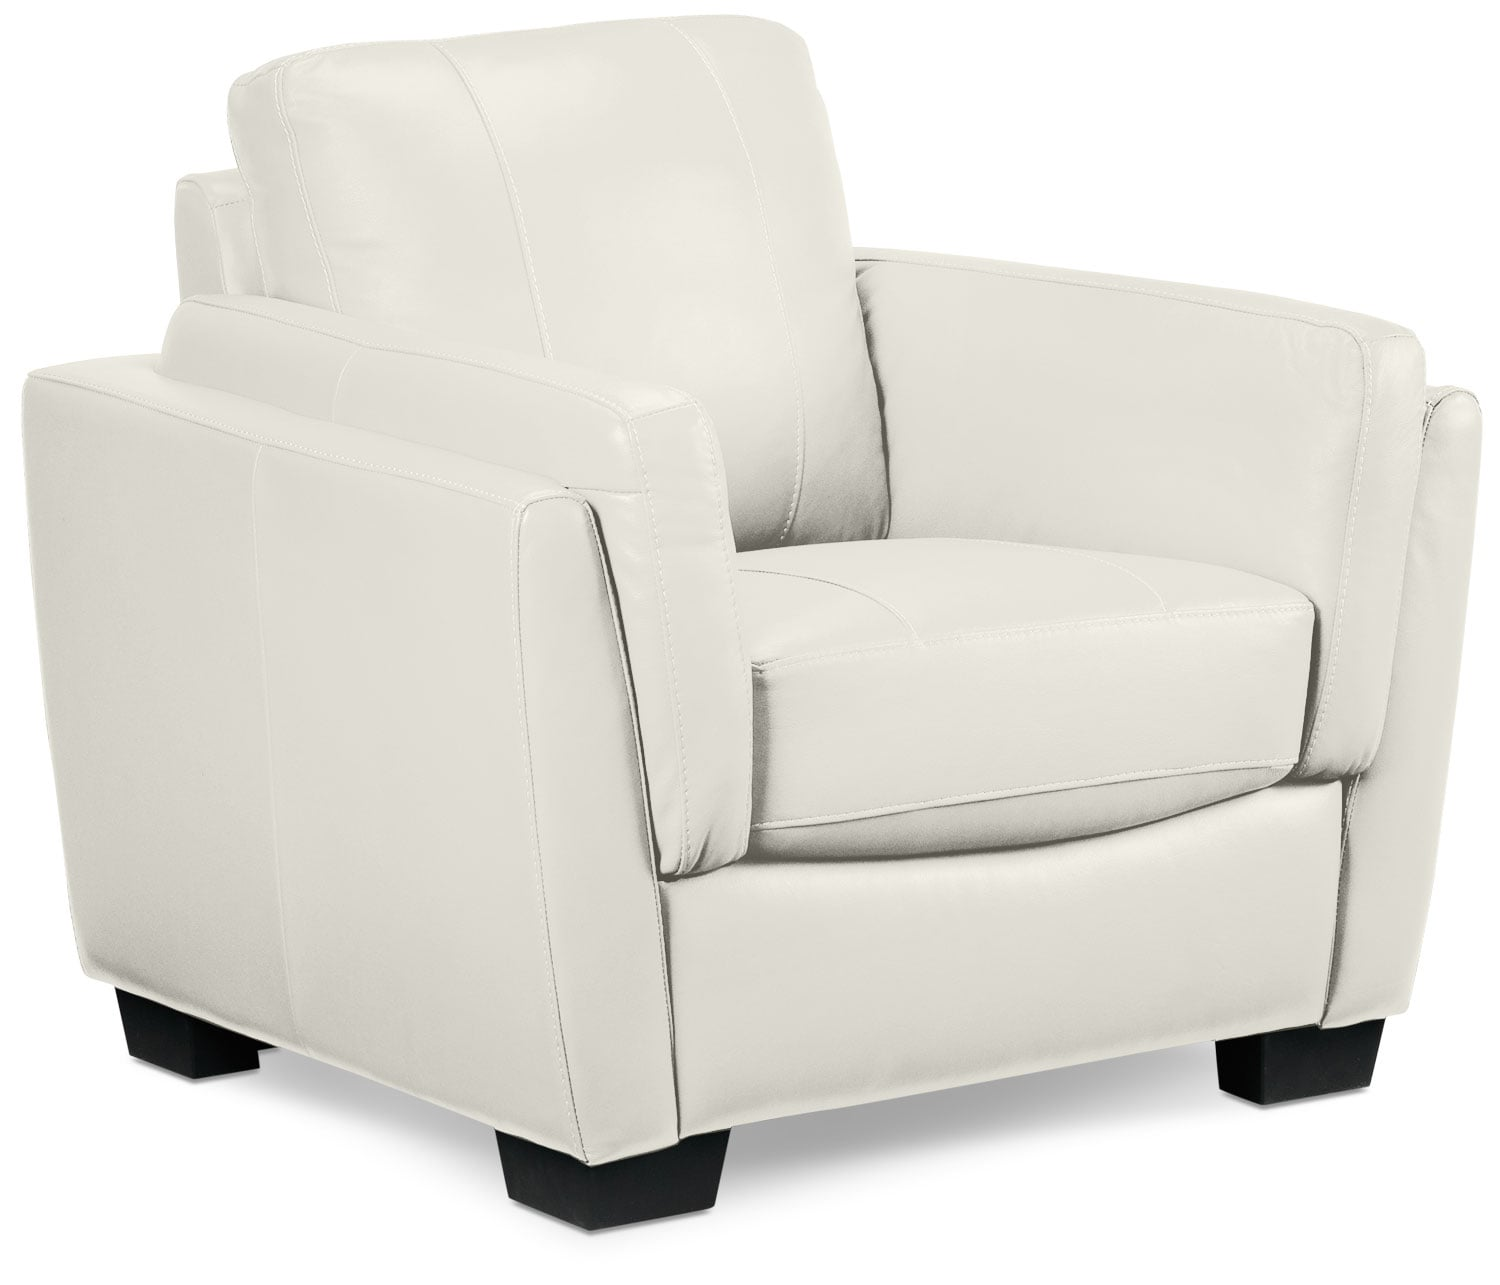 Living Room Furniture - Isadore Chair - White